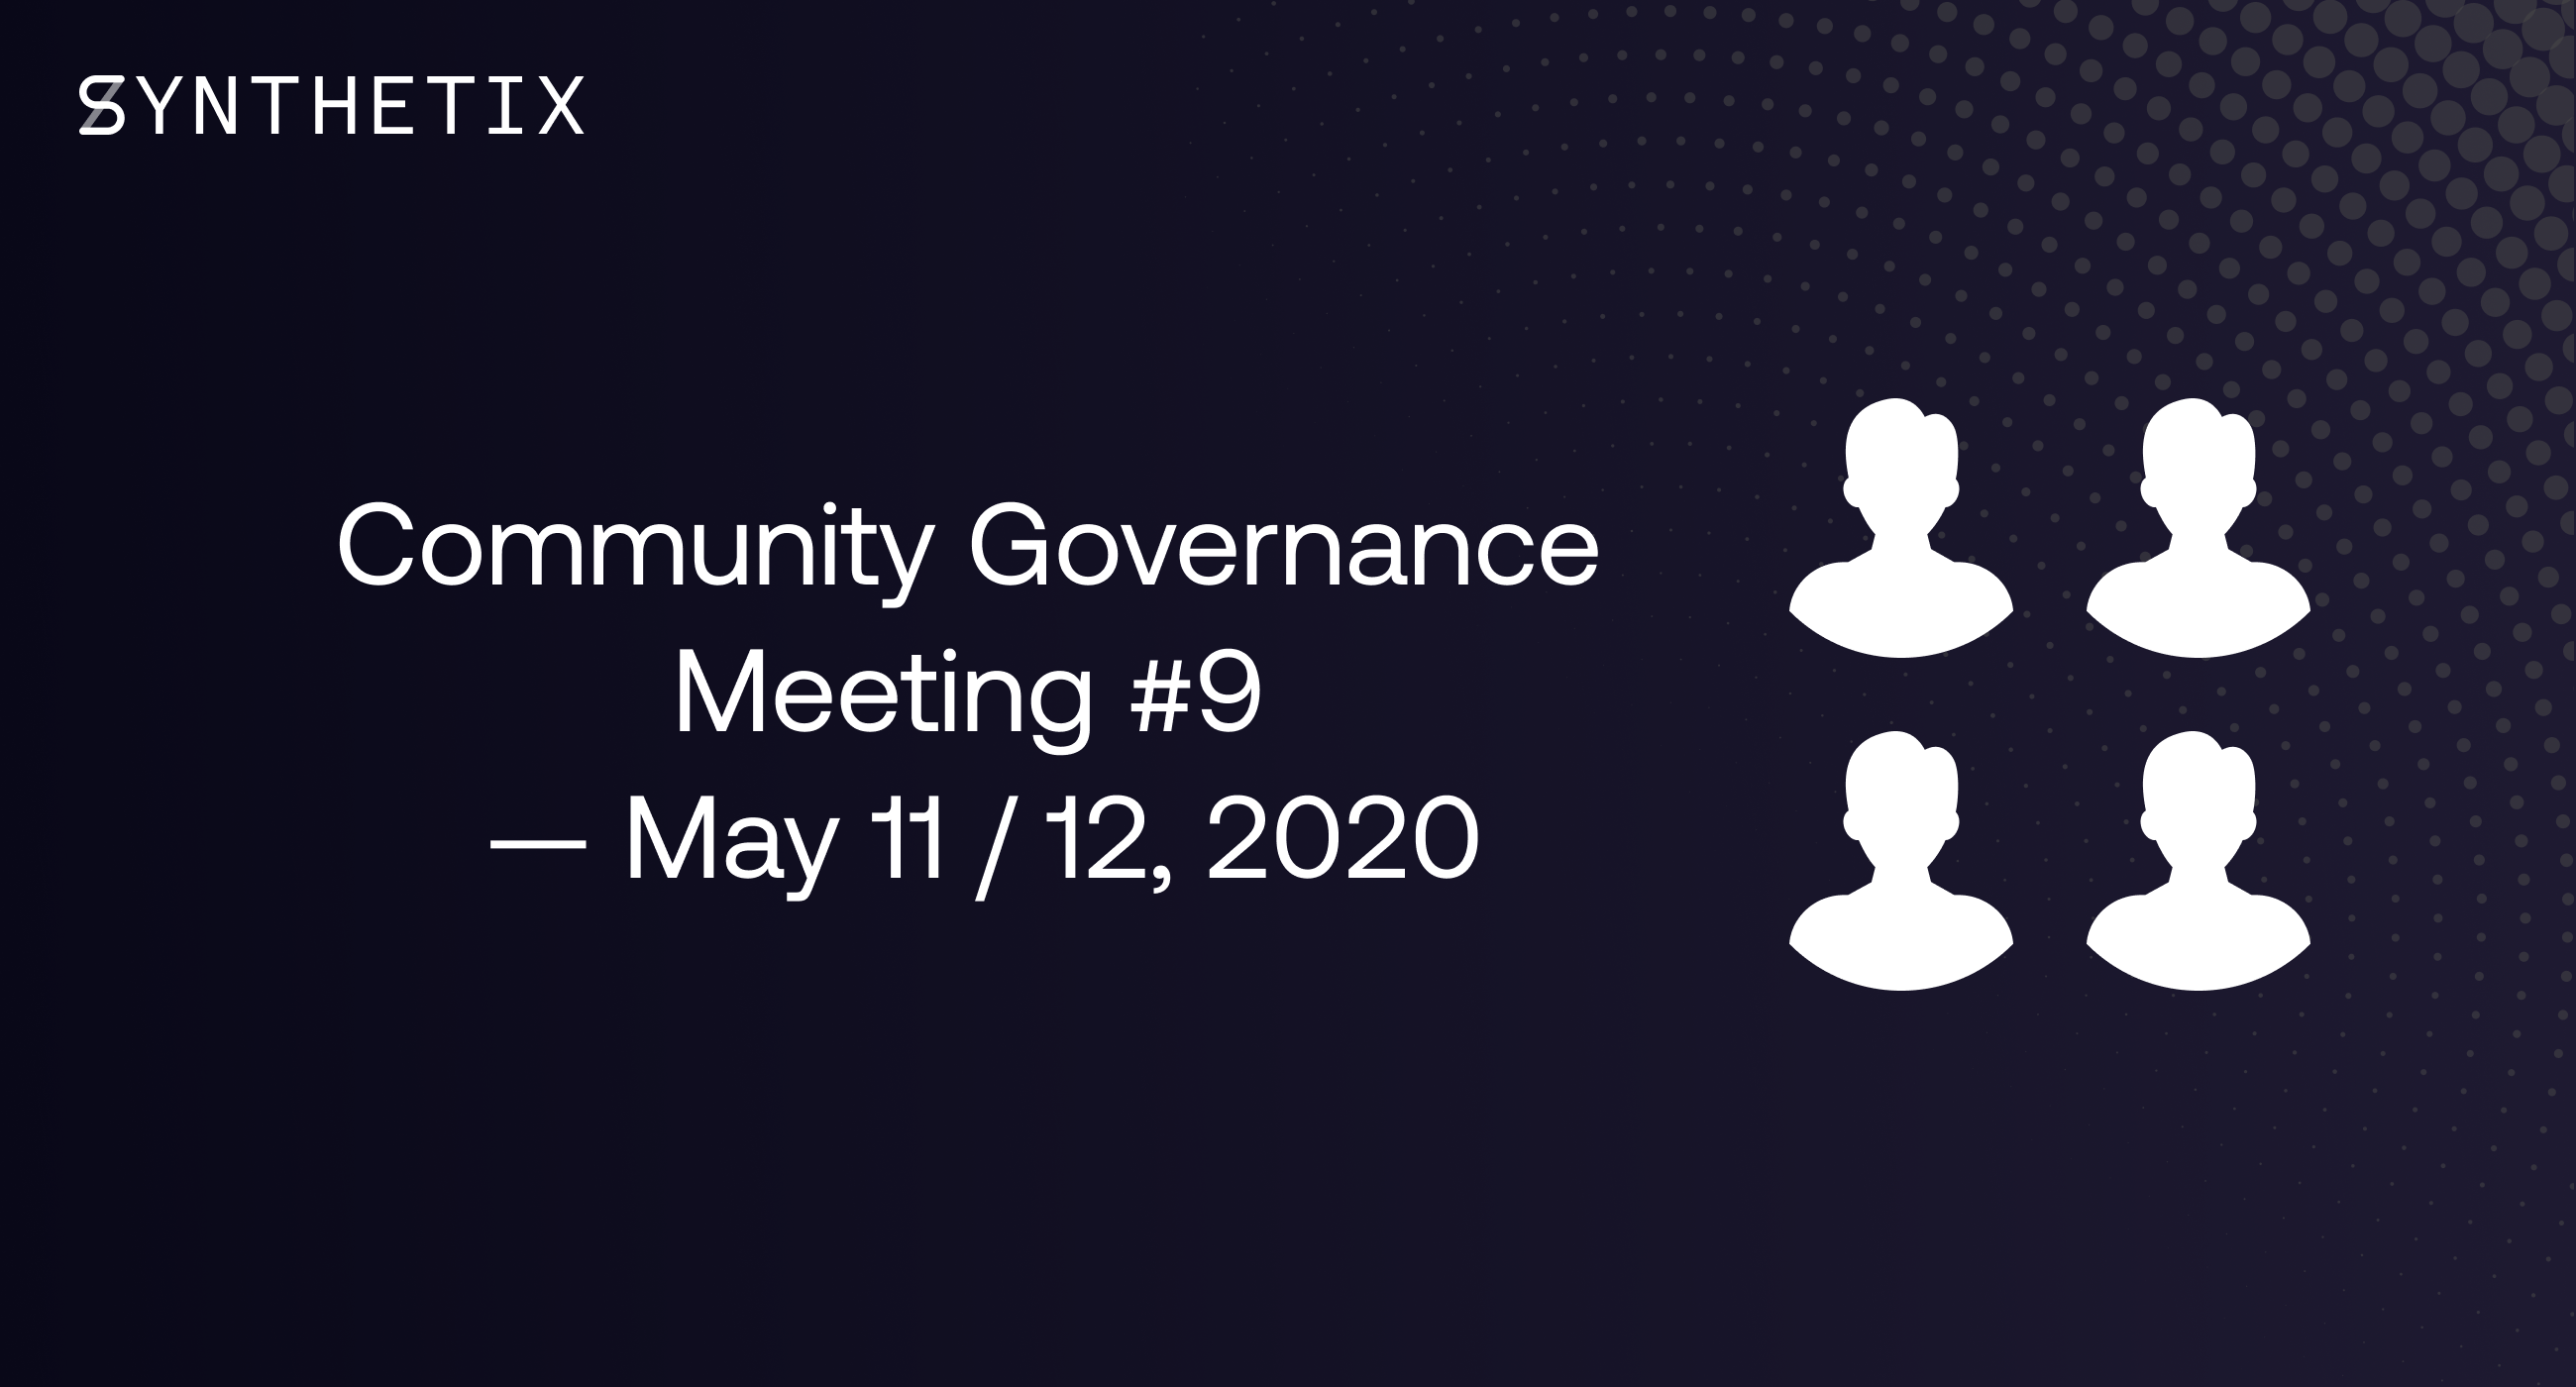 Join us on May 11/12 for the next community governance call!